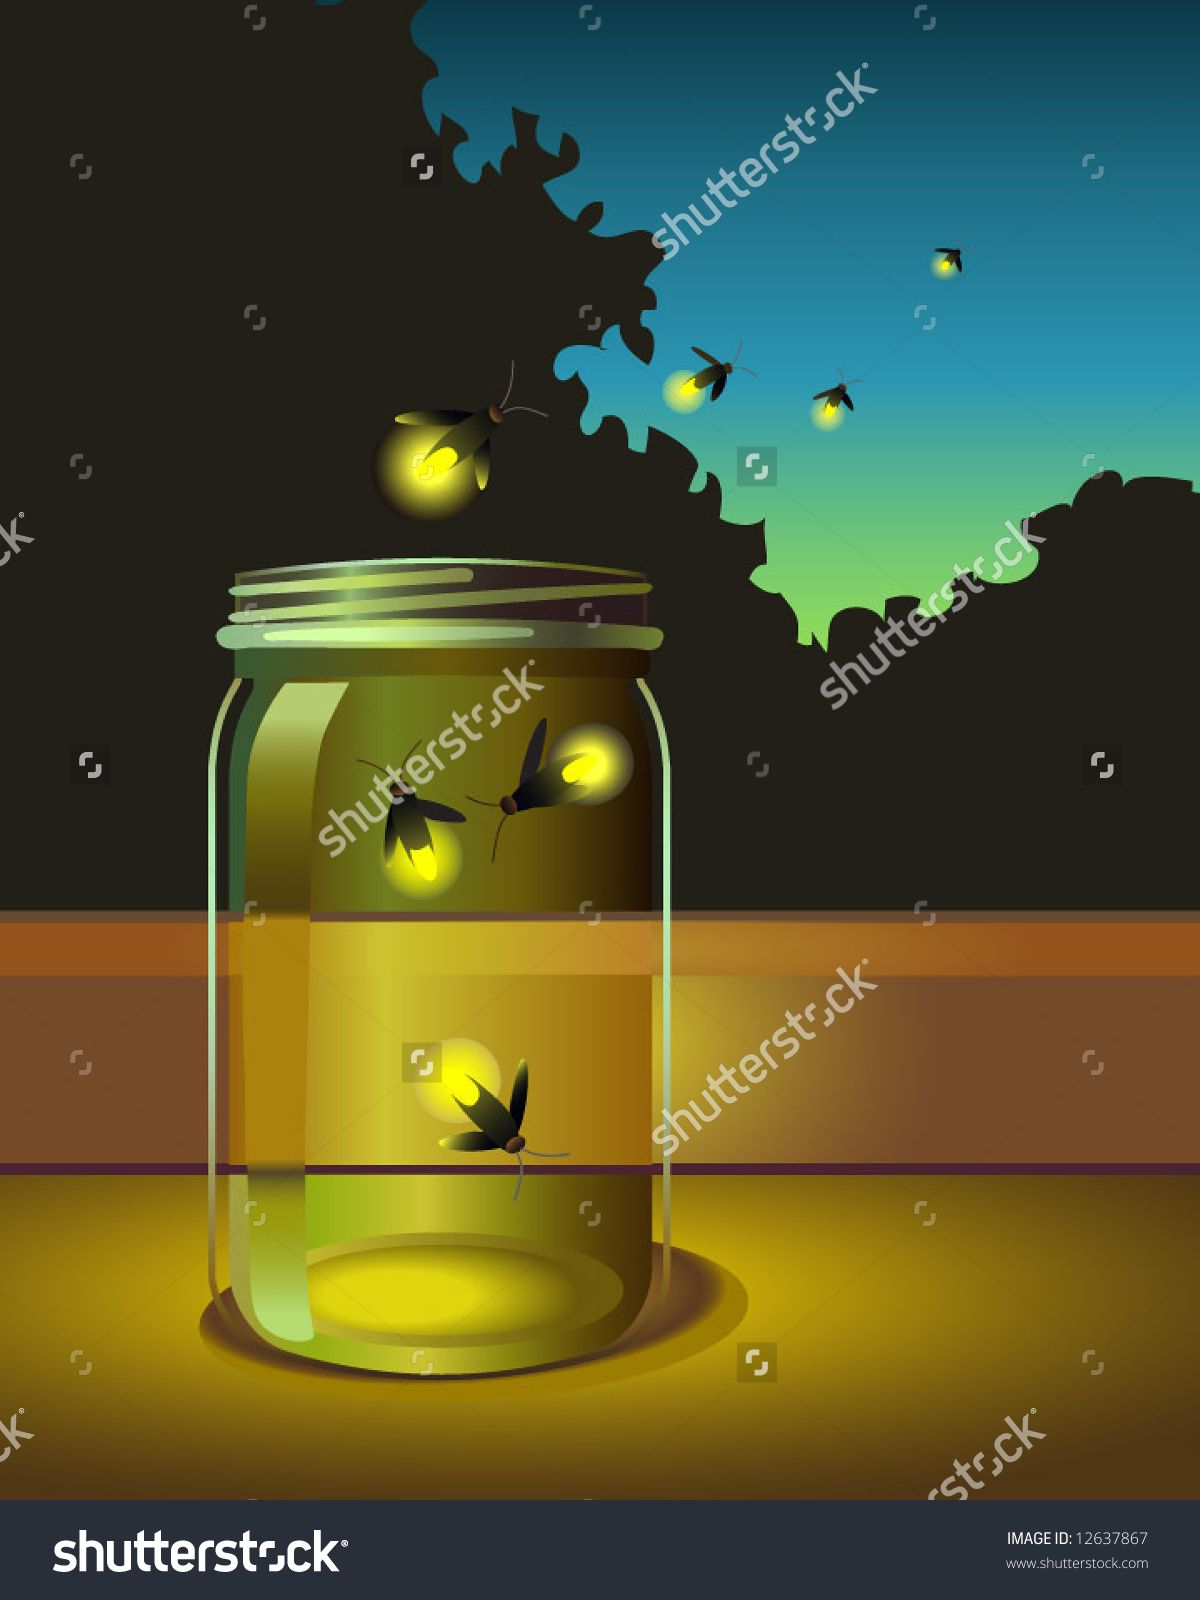 vector of fireflies escaping a glass jar | Firefly Frolic ... for Firefly Insect In Jar  104xkb